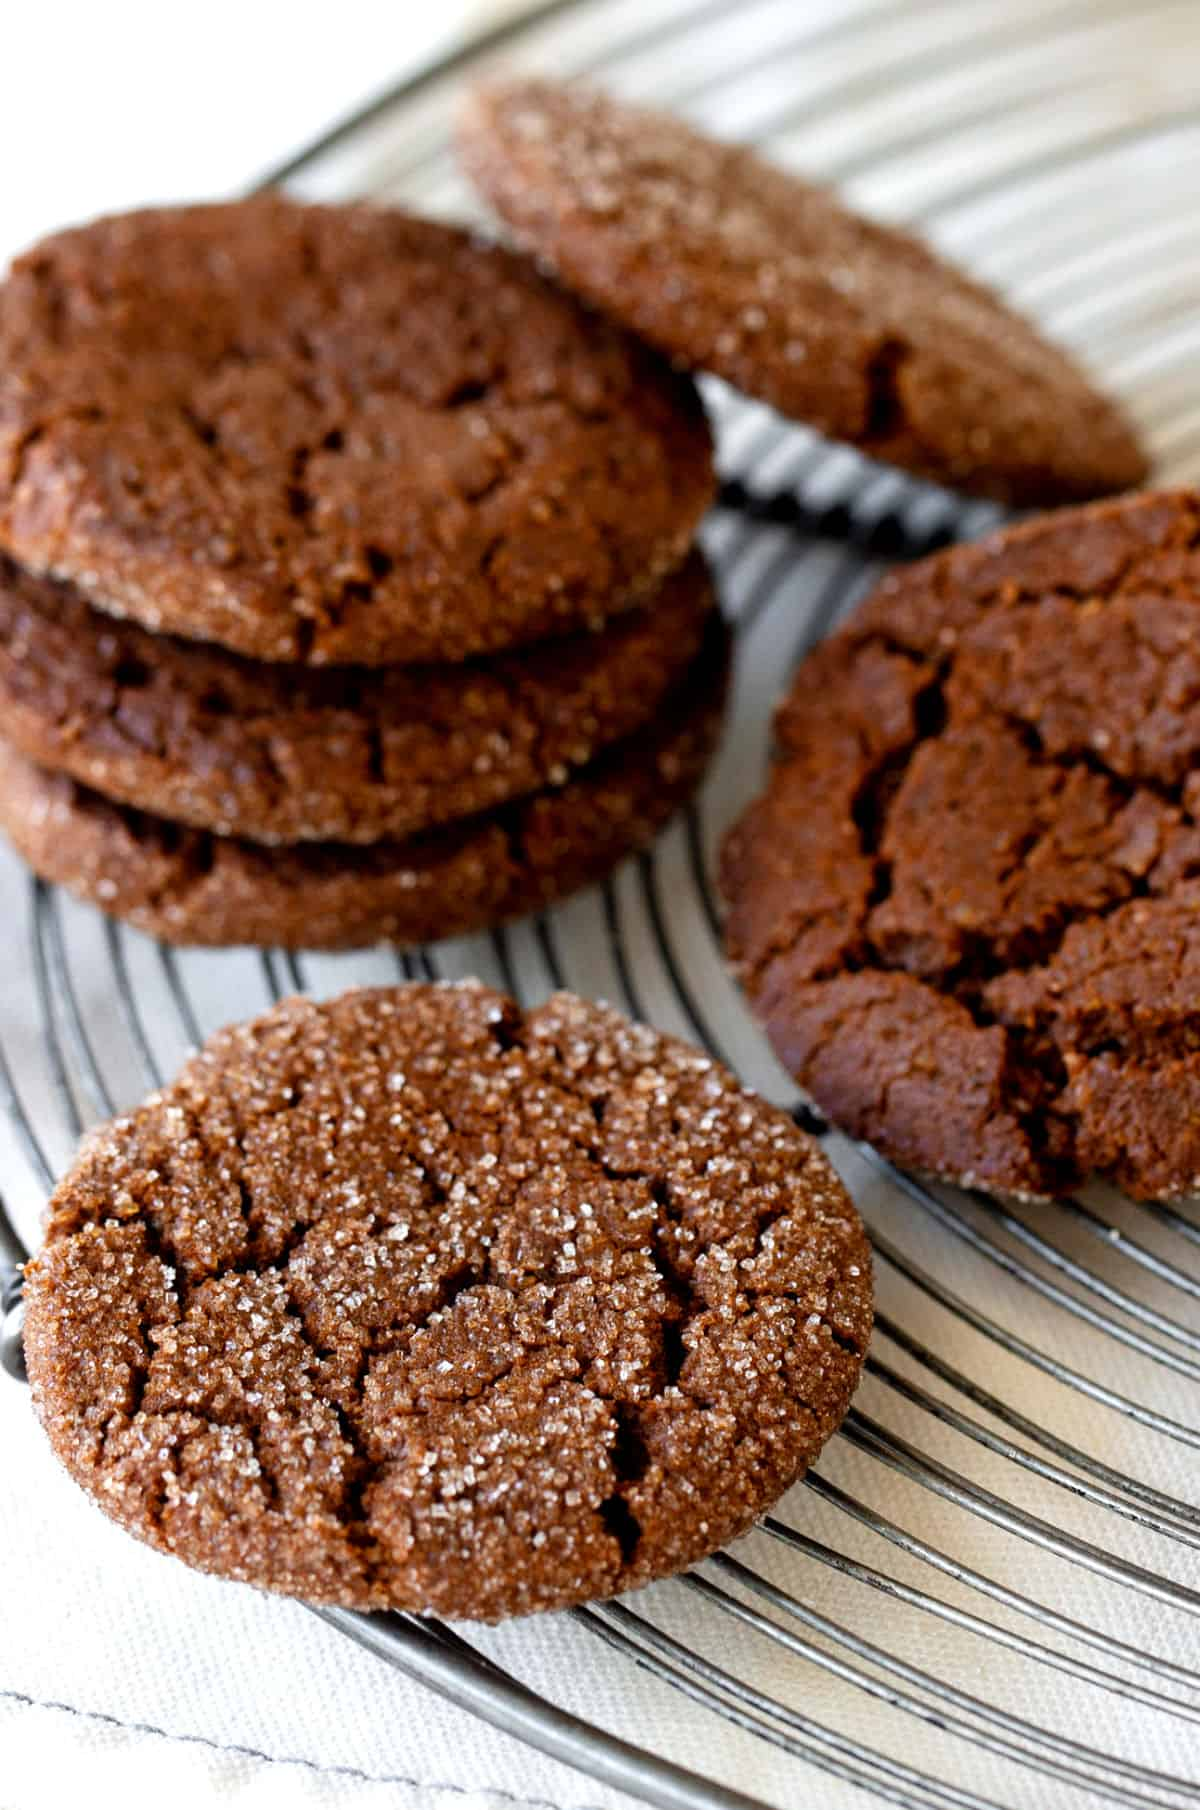 Several dark molasses cookies, stacked, on wire rack